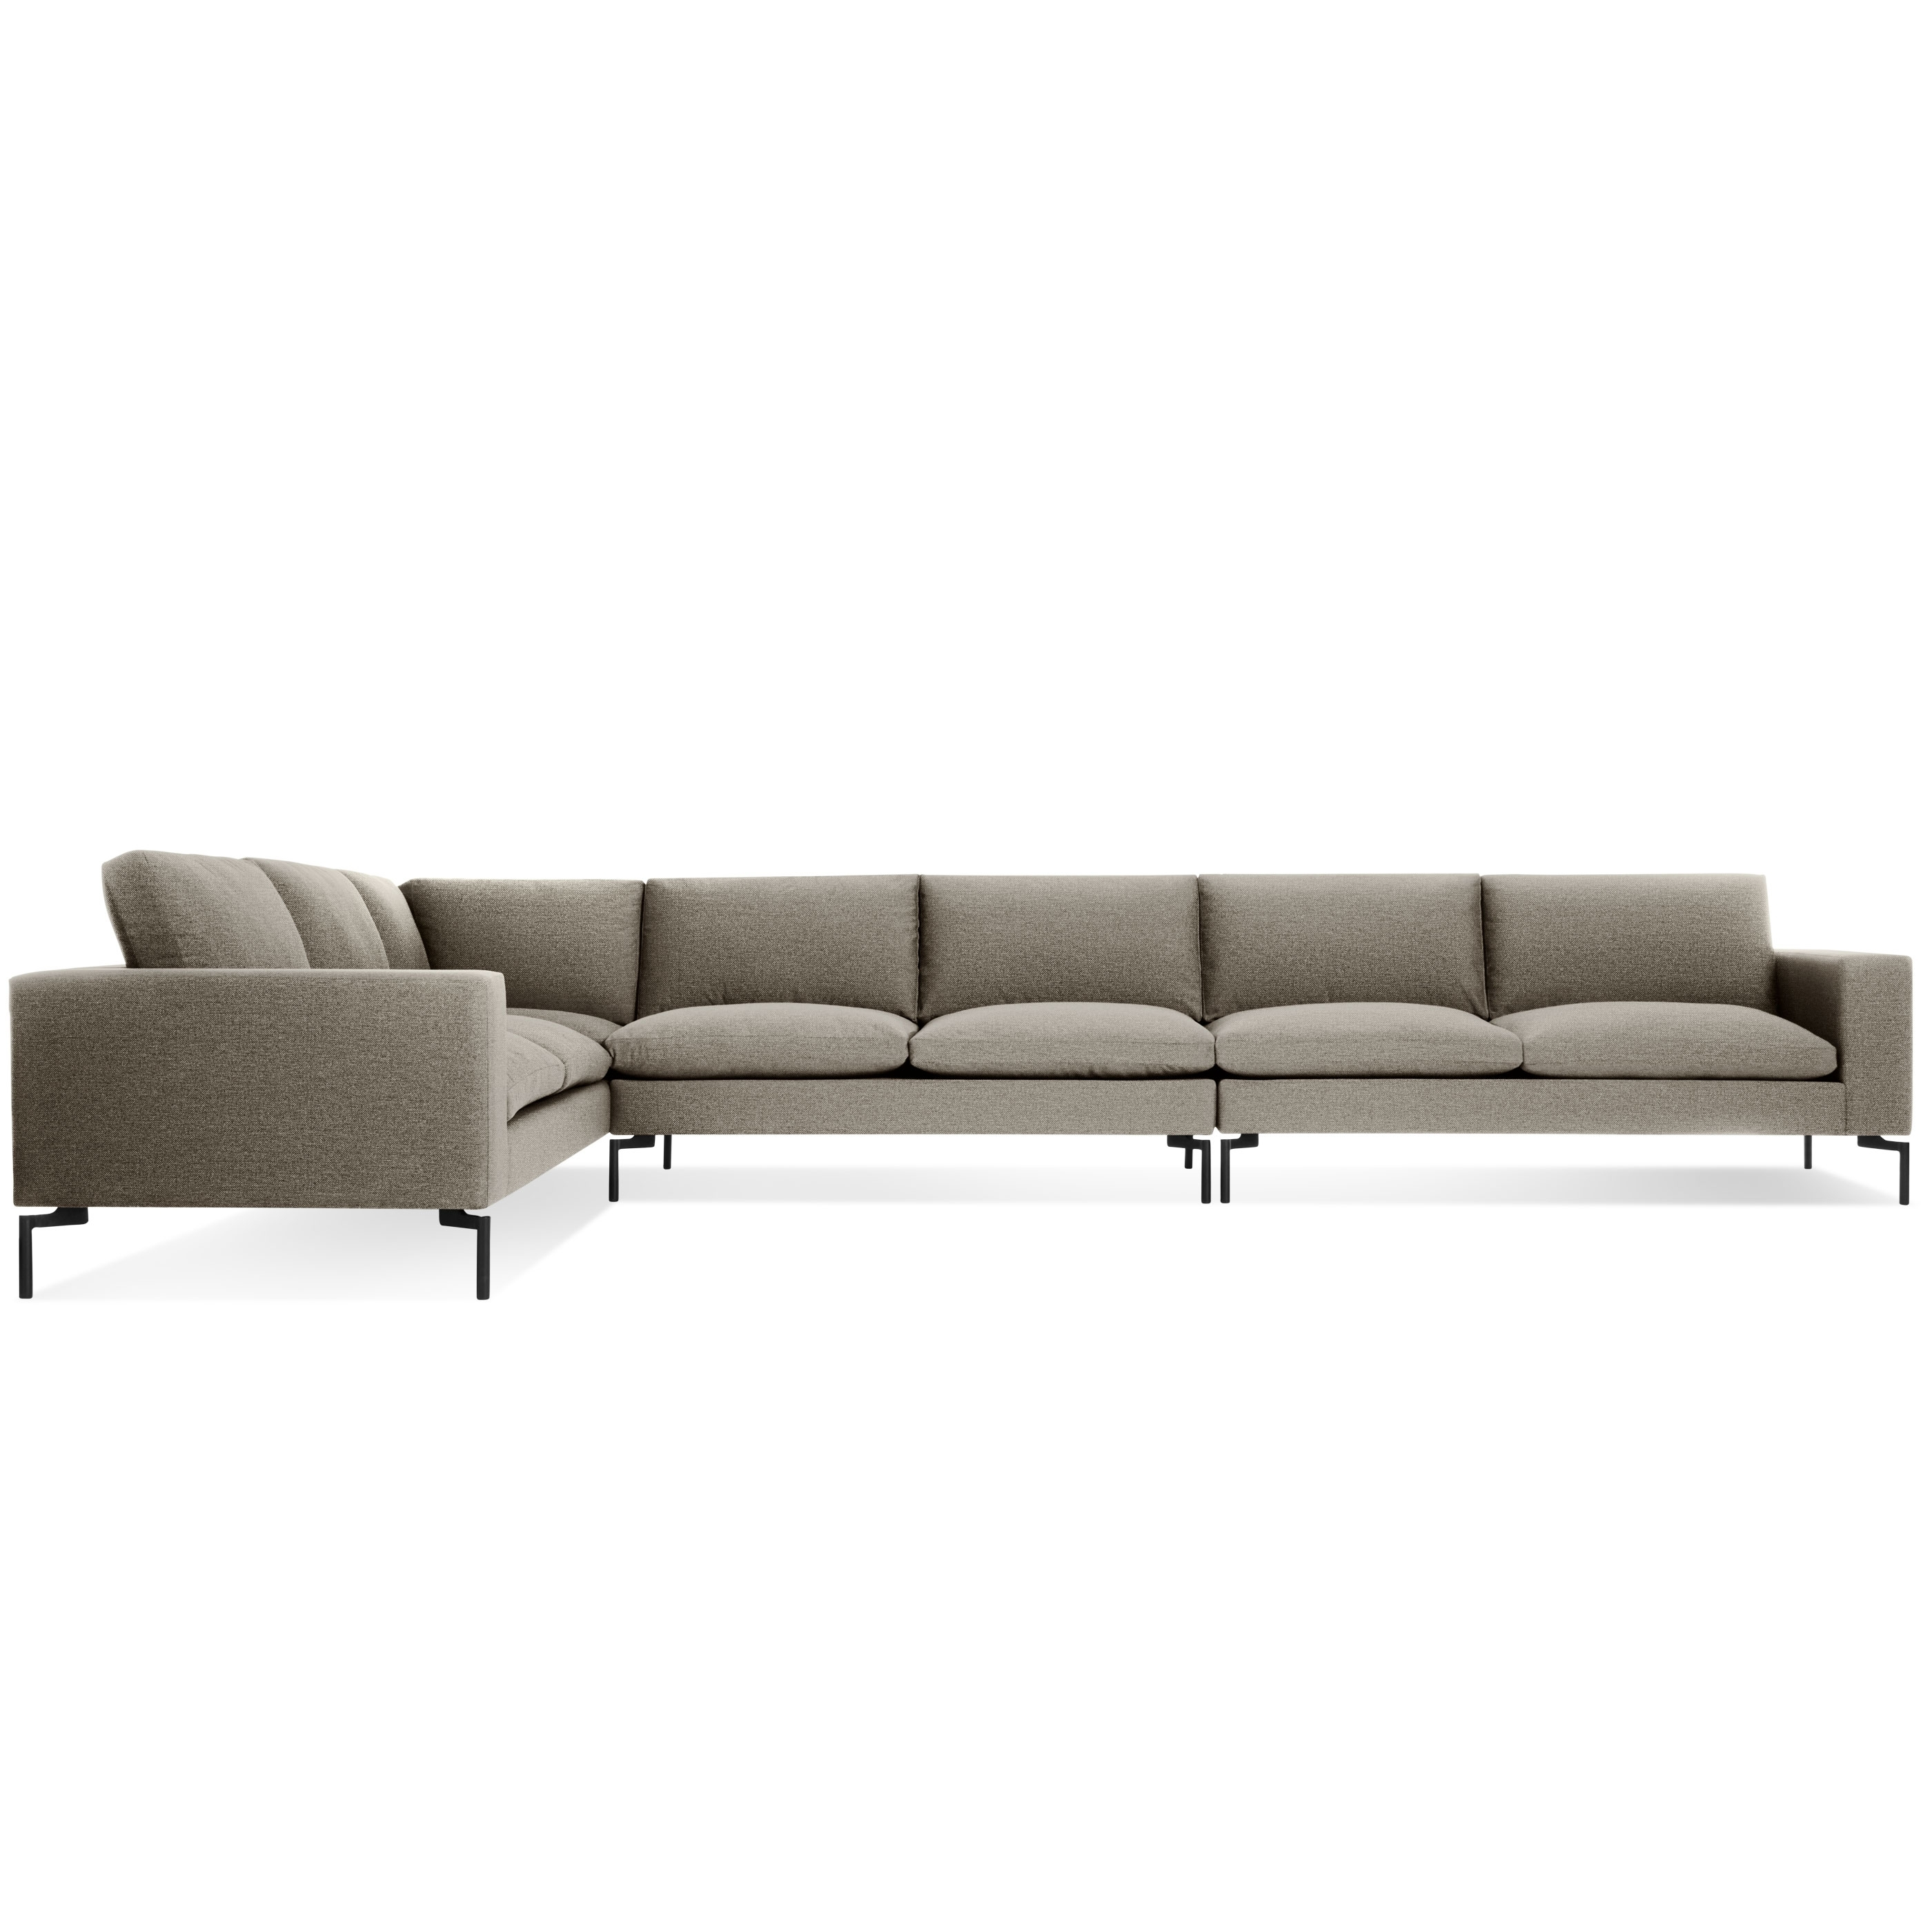 New Standard Large Sectional Sofa   Large Sofas | Blu Dot Inside Newfoundland Sectional Sofas (Photo 6 of 10)